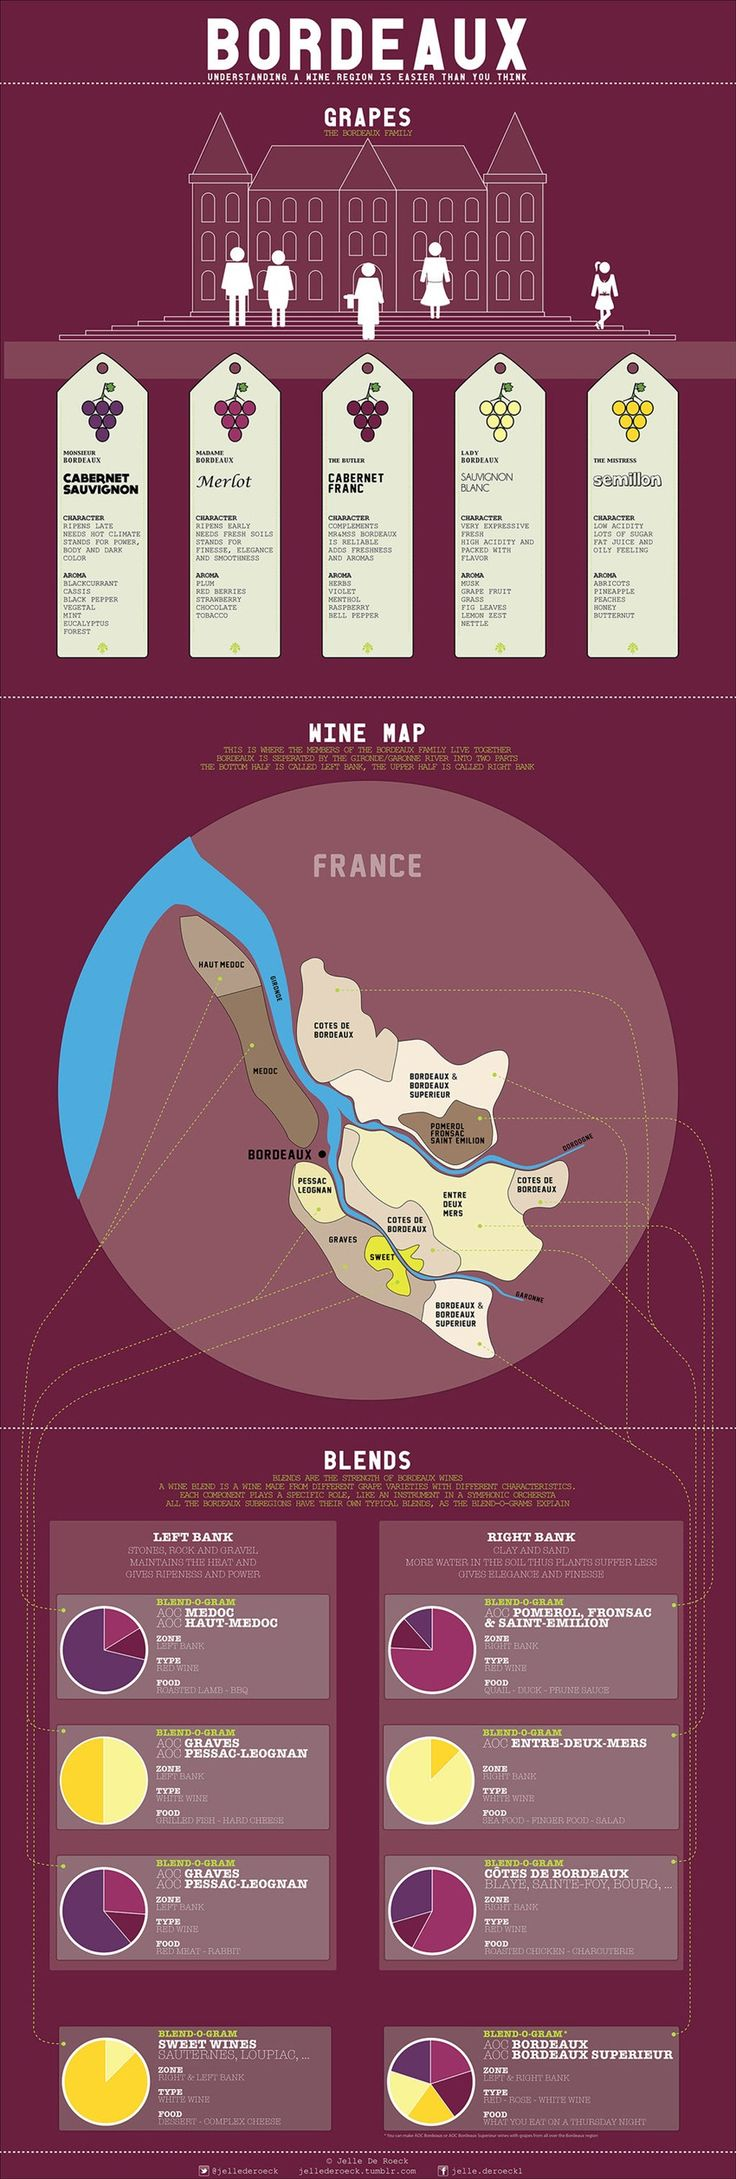 Bordeaux easier than you think. Certainly with a glass of Médsac or Saint Pomerol at your side...